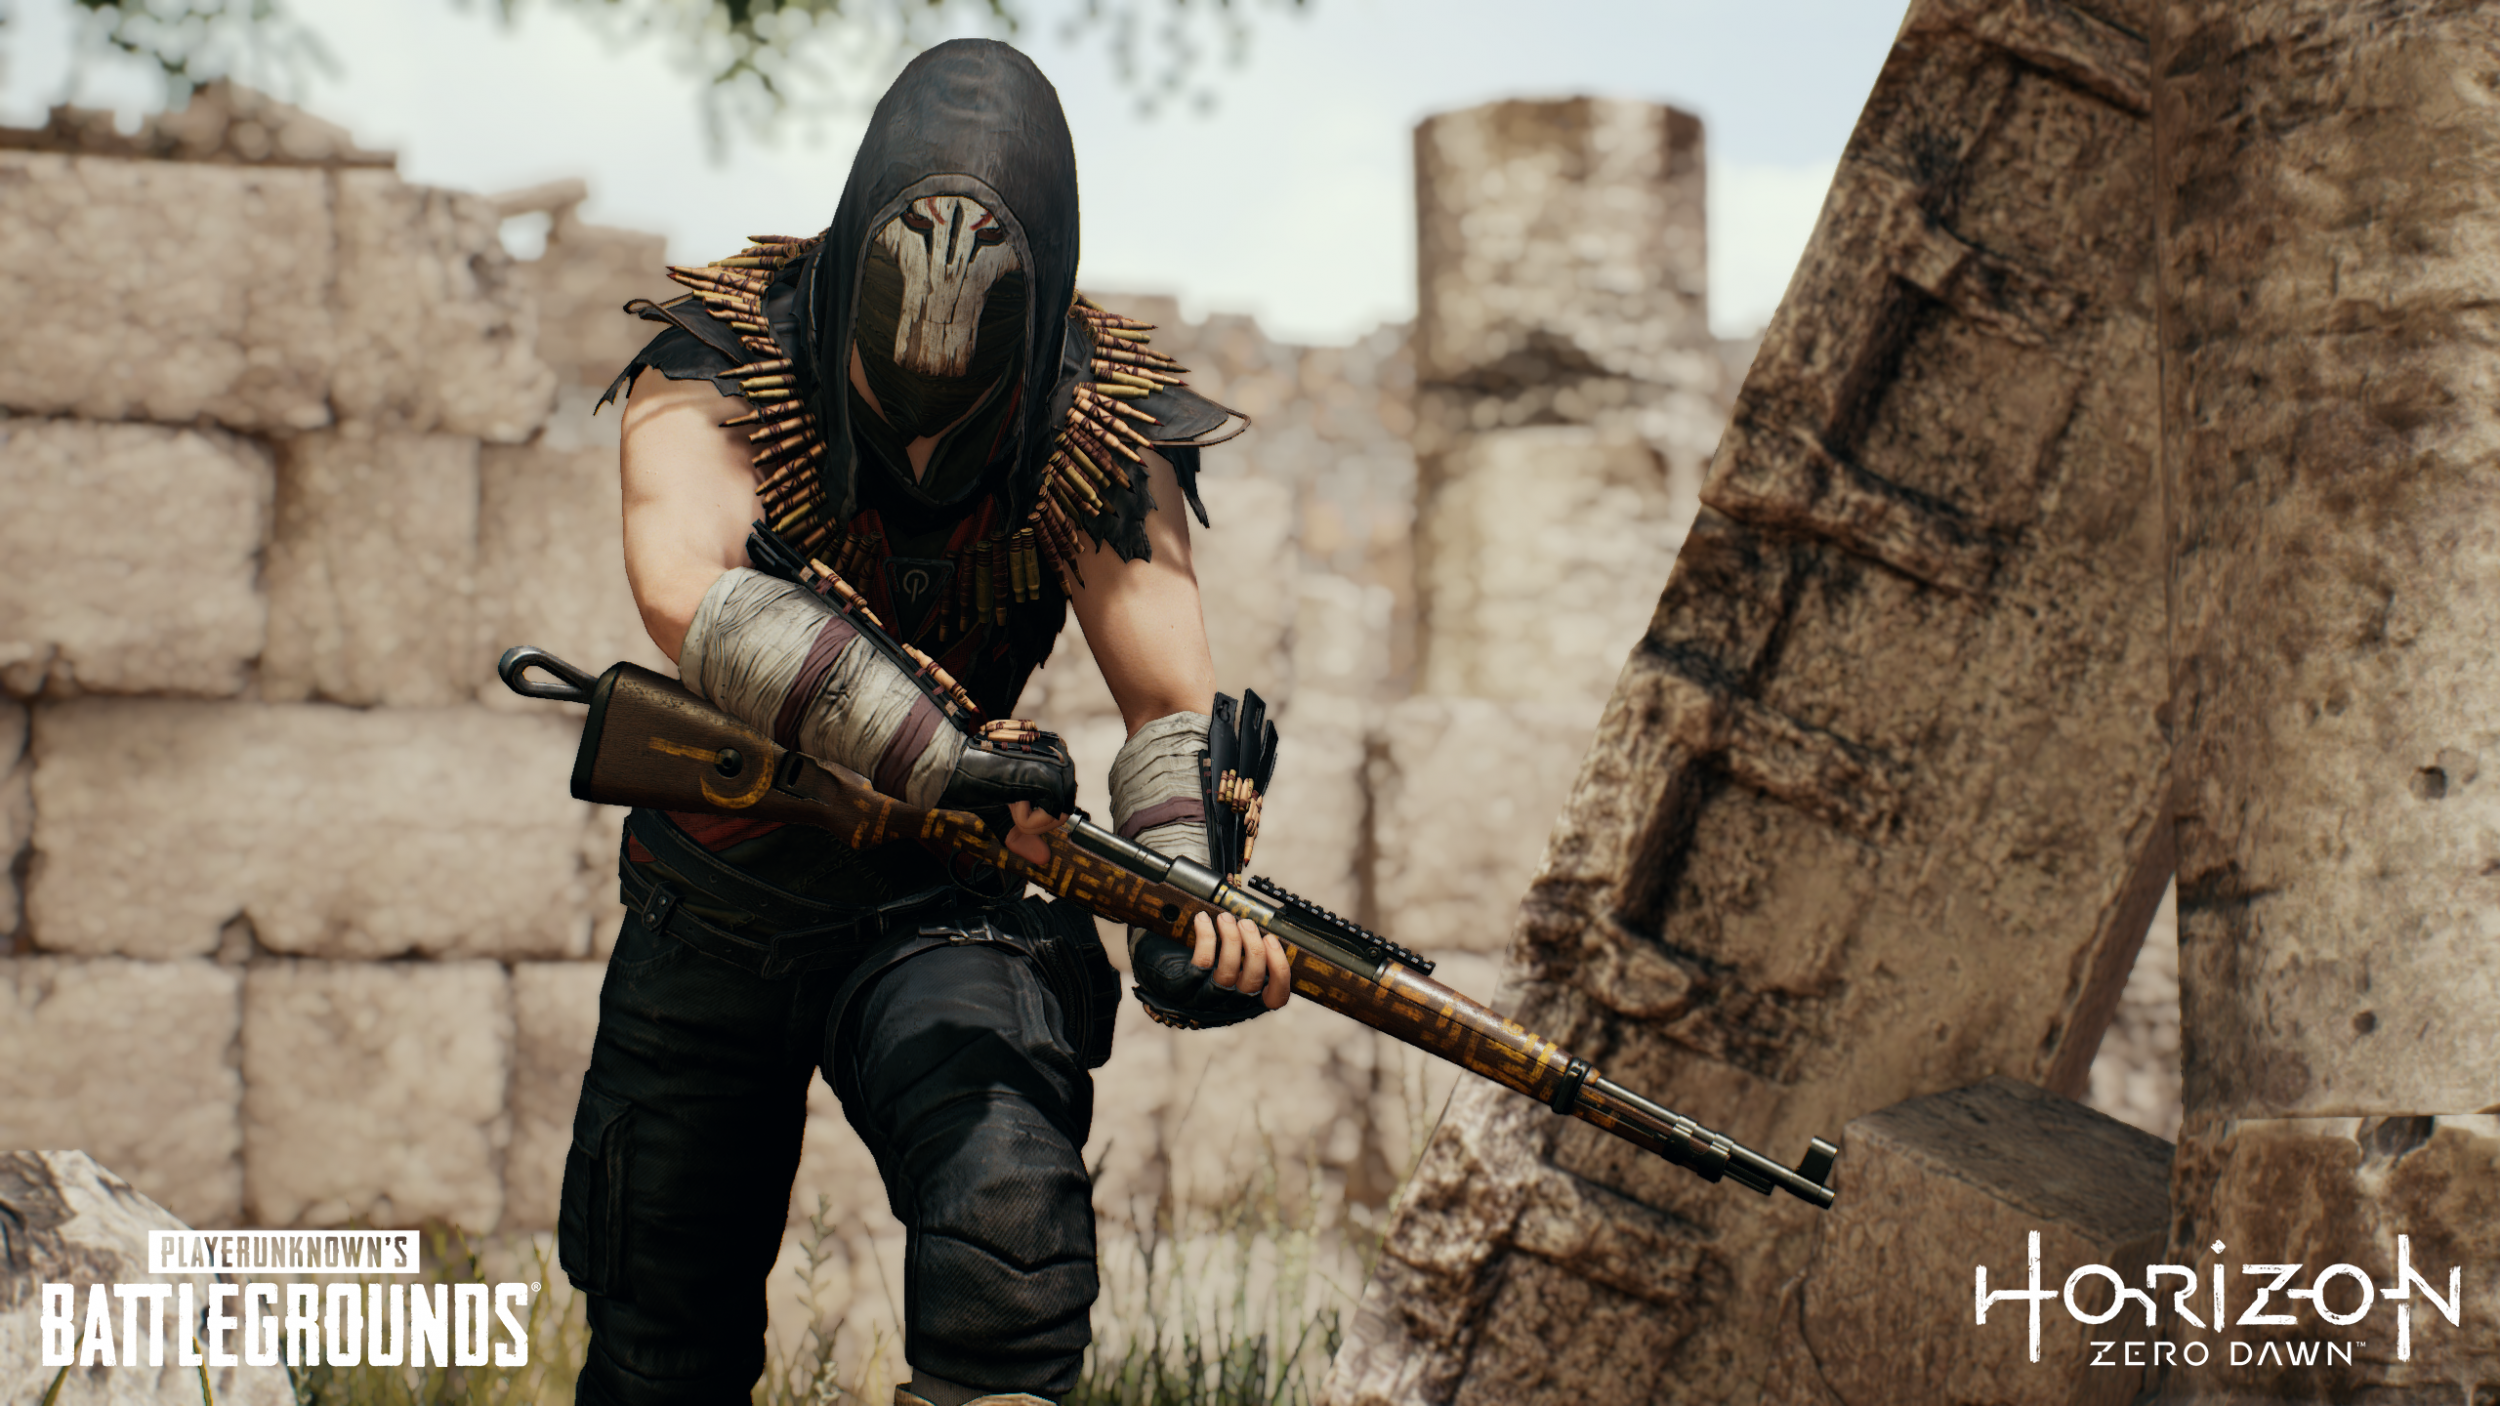 All Pubg Weapons Skins How To Get Them: 'PUBG' Free 'Horizon: Zero Dawn' Skins Release On PS4 March 5